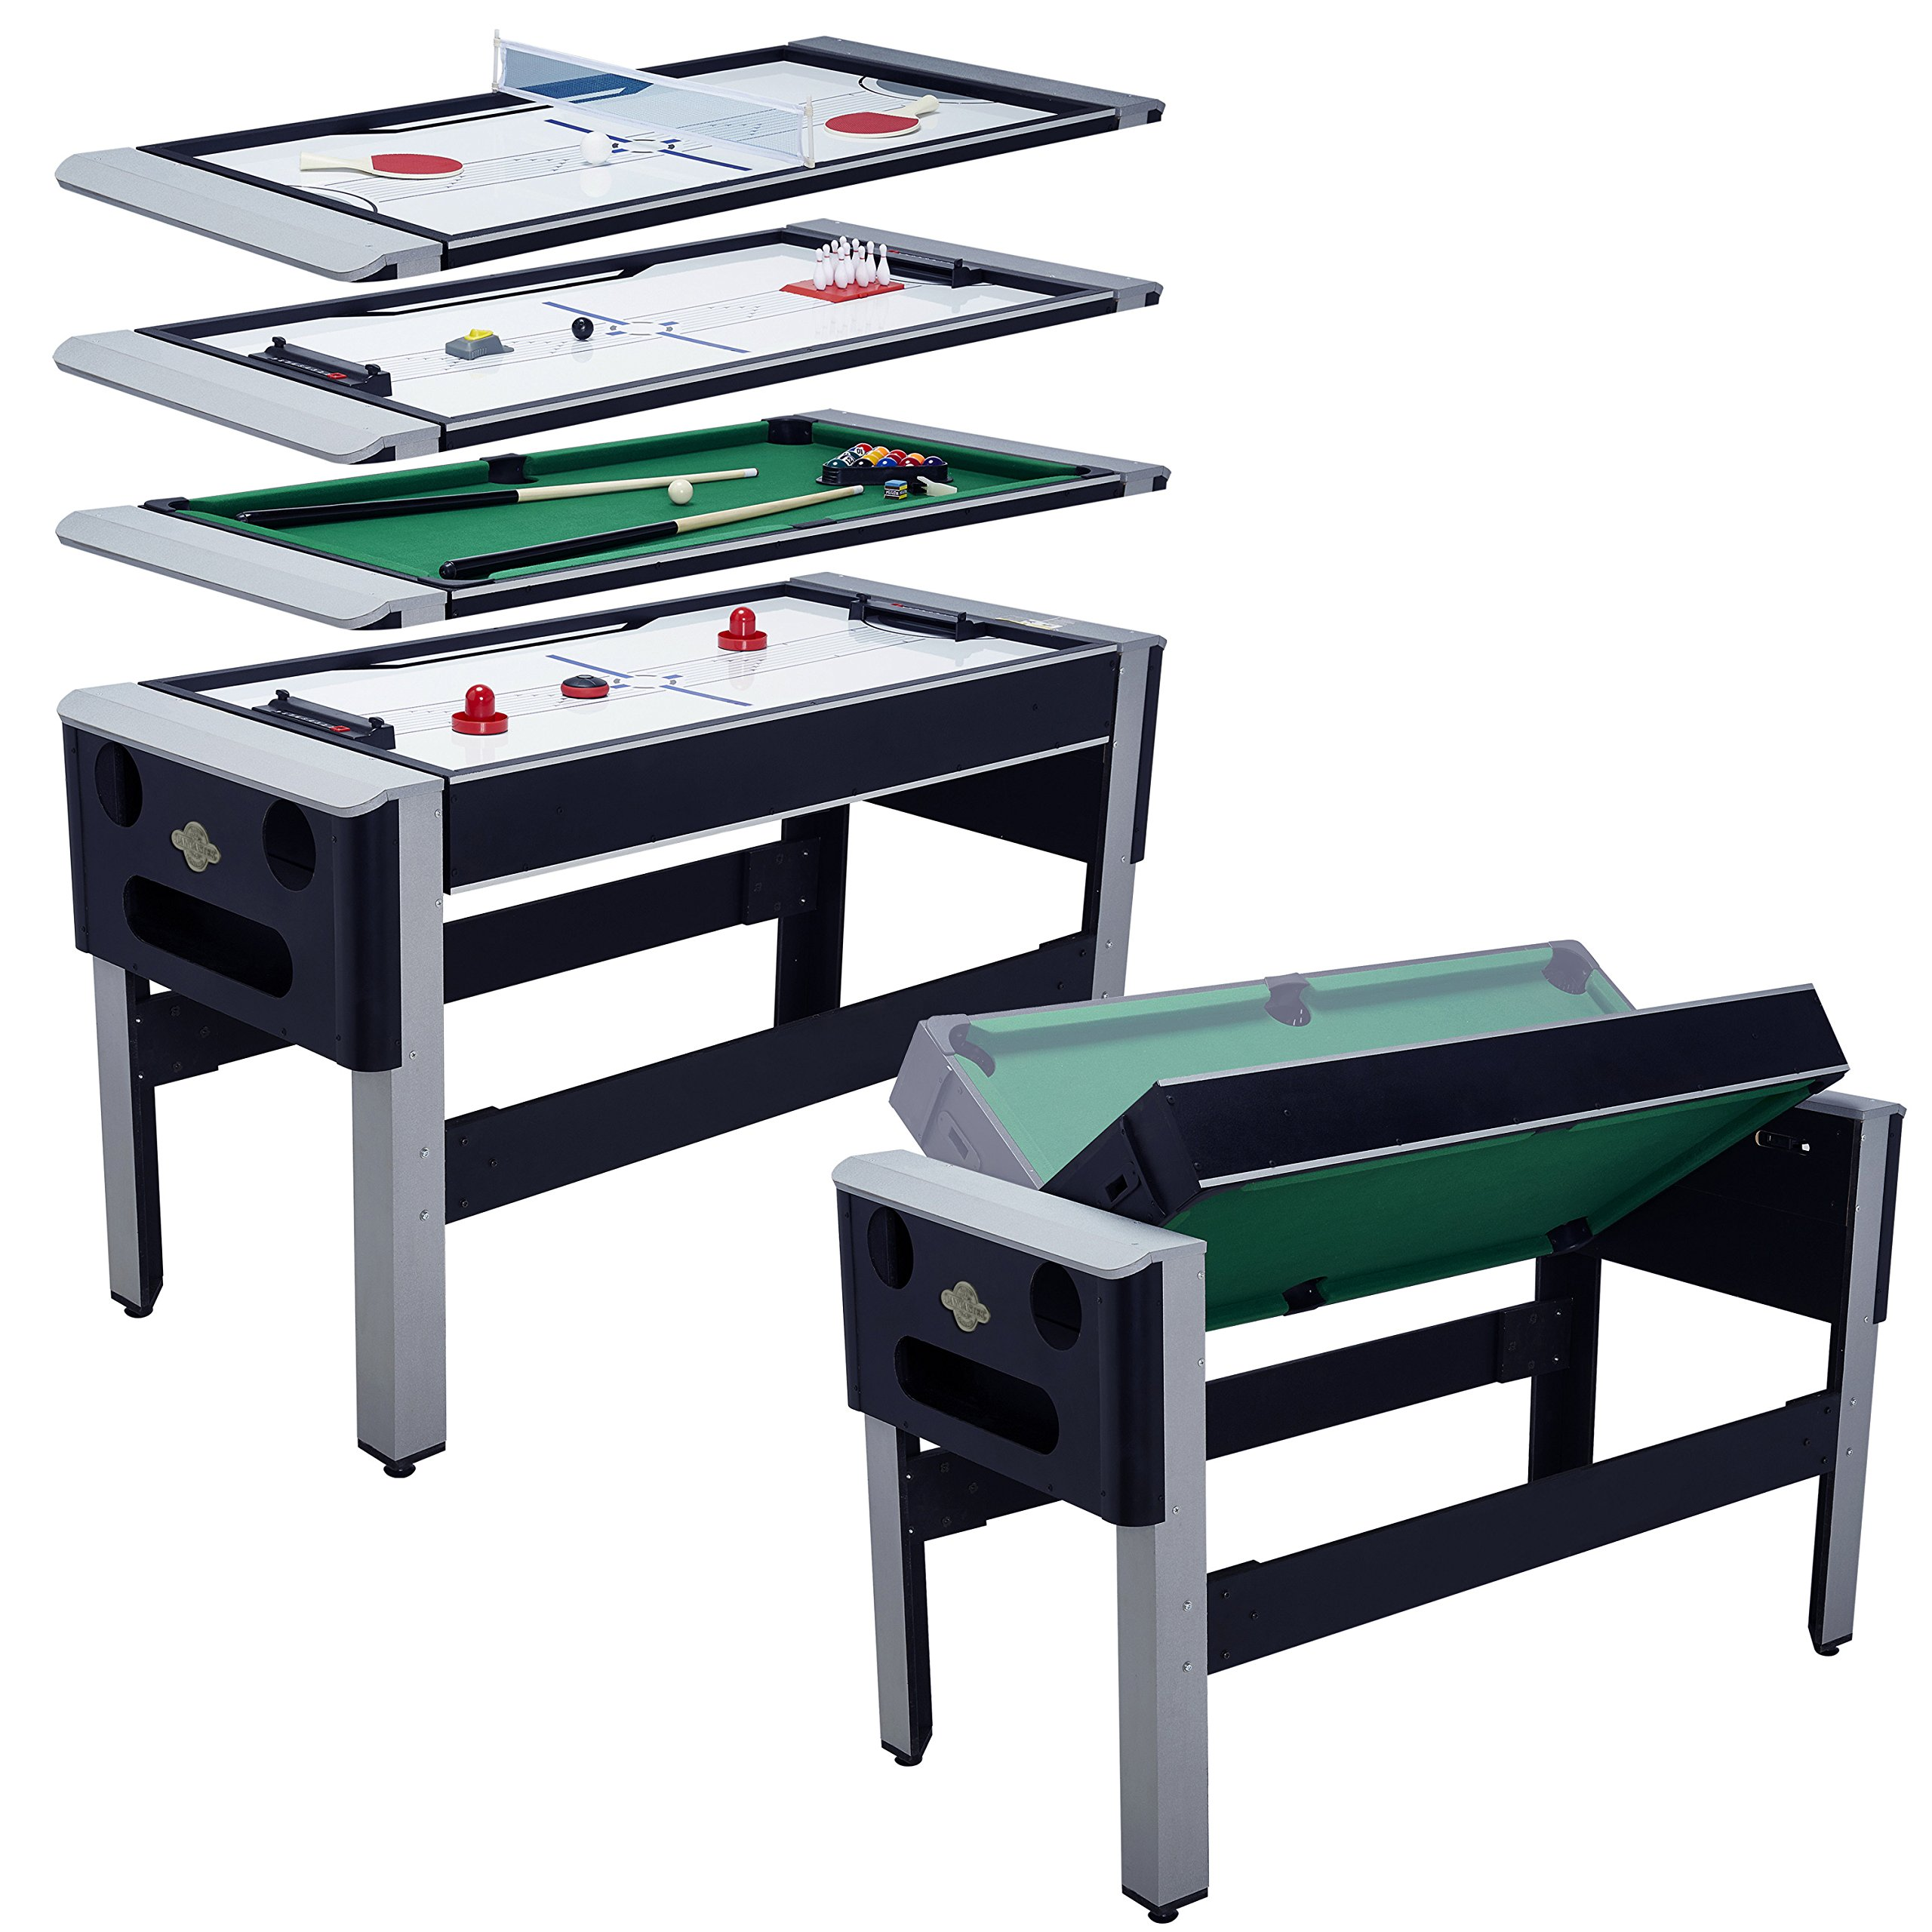 Lancaster 54'' 4 in 1 Pool Bowling Hockey Table Tennis Combo Arcade Game Table by Lancaster Gaming Company